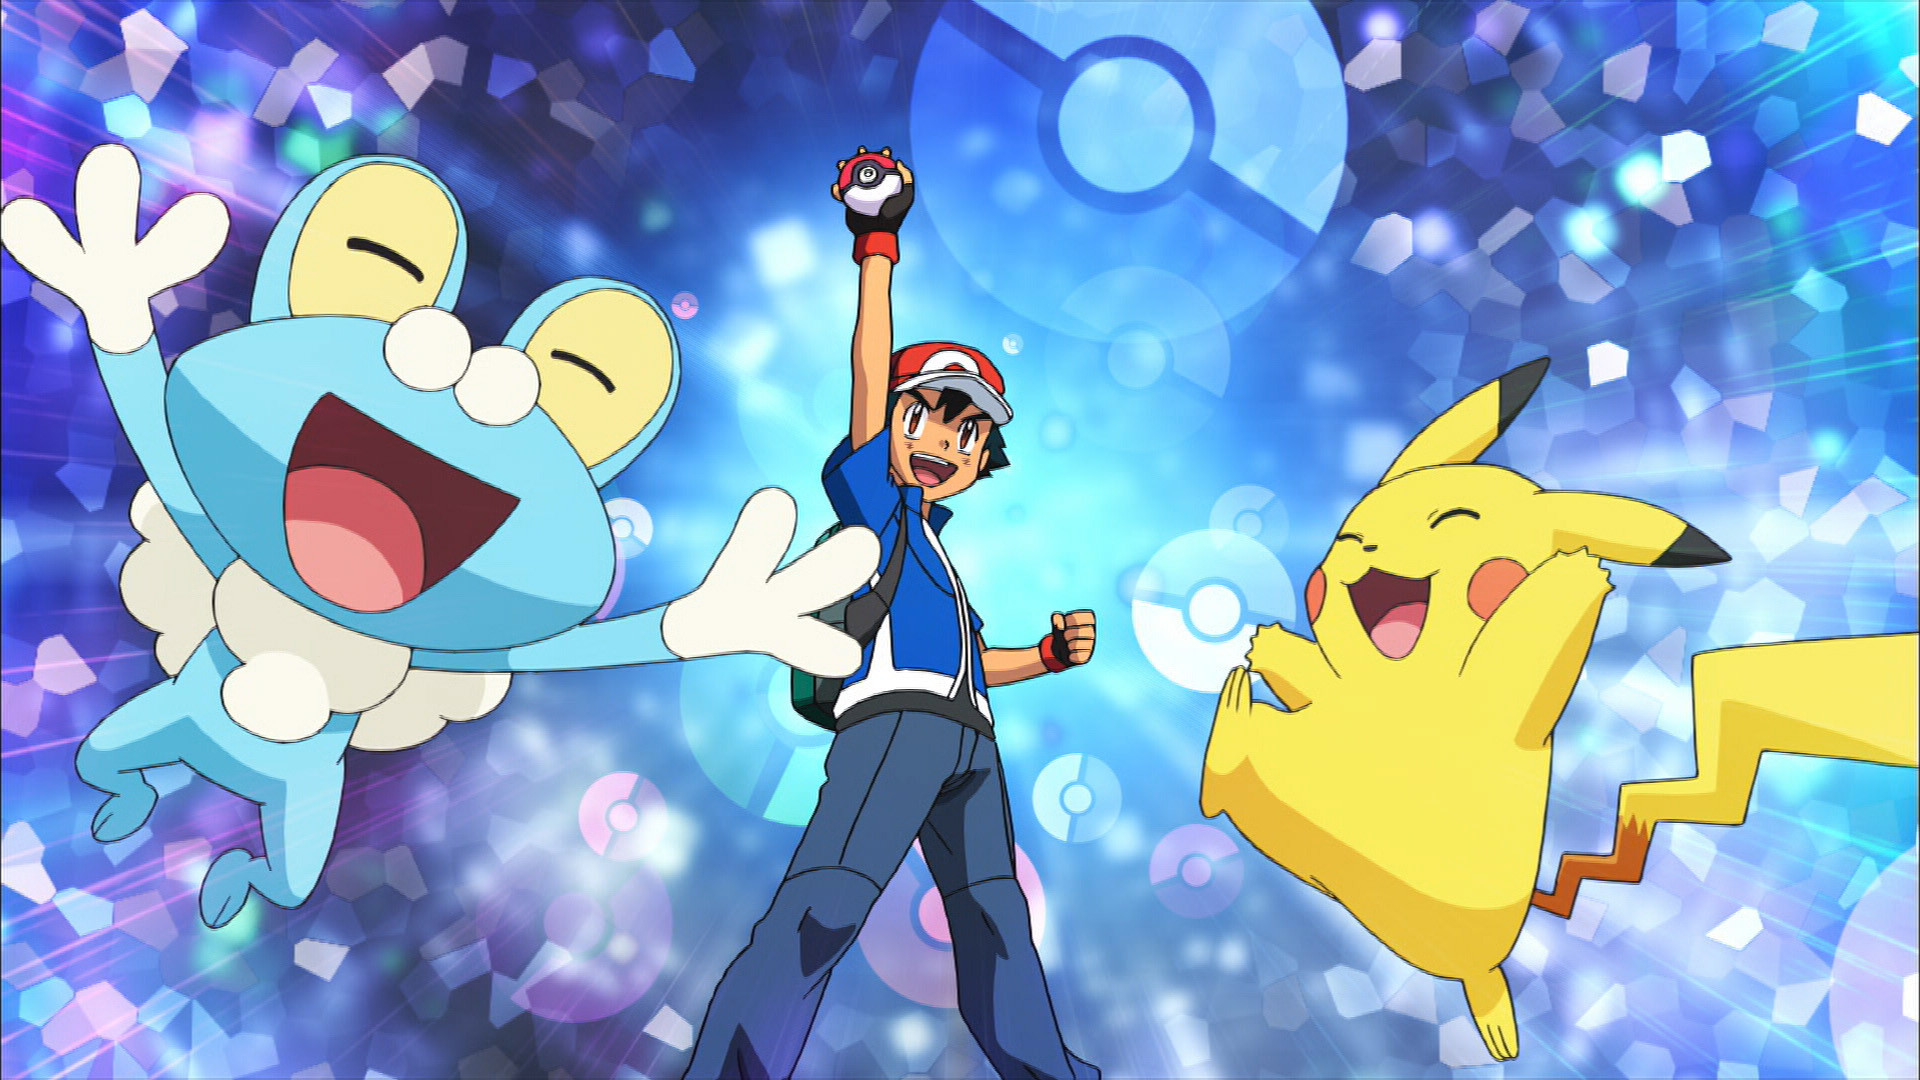 Pokemon HD Wallpaper Wide ready to download just for FREE from our  beautiful Pokemon HD Wallpapers